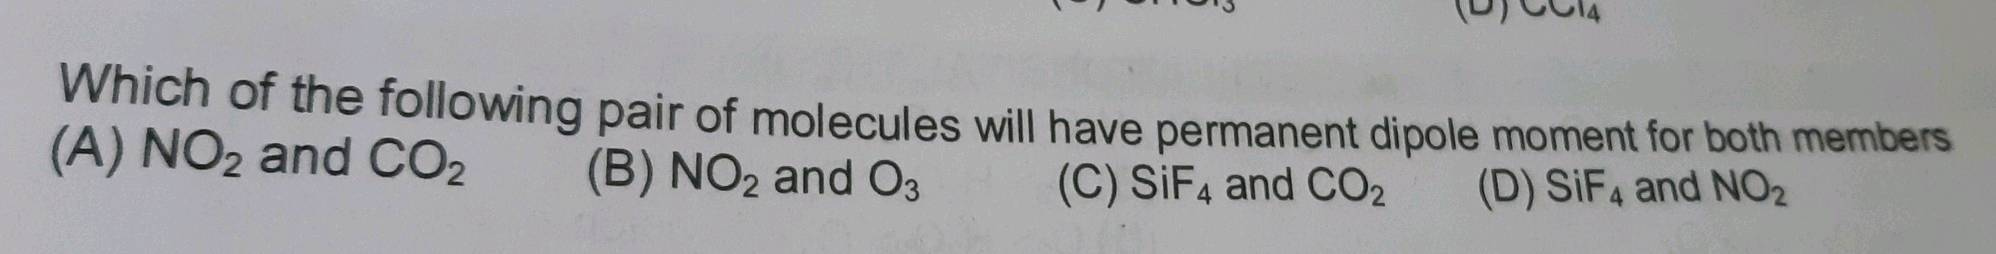 0 Ccl4 Which Of The Following Pair Of Molecules Will Have Permanent Dipole Moment For Both